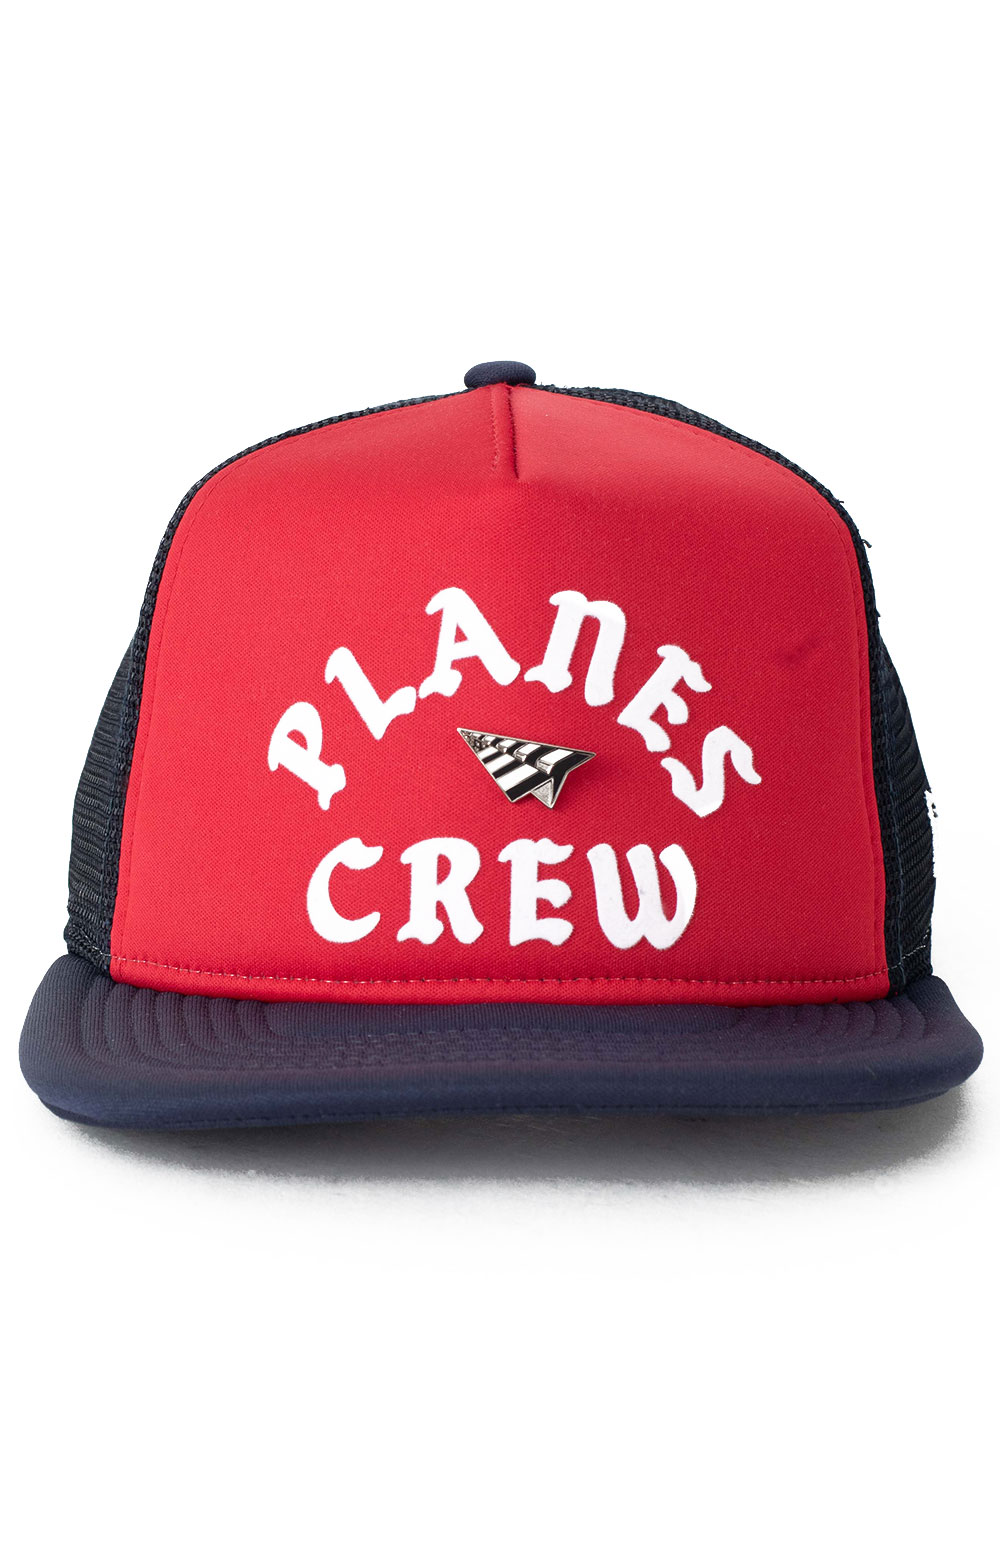 Planes Crew Trucker Two Tone Old School Snap-Back Hat - Red/Navy 2